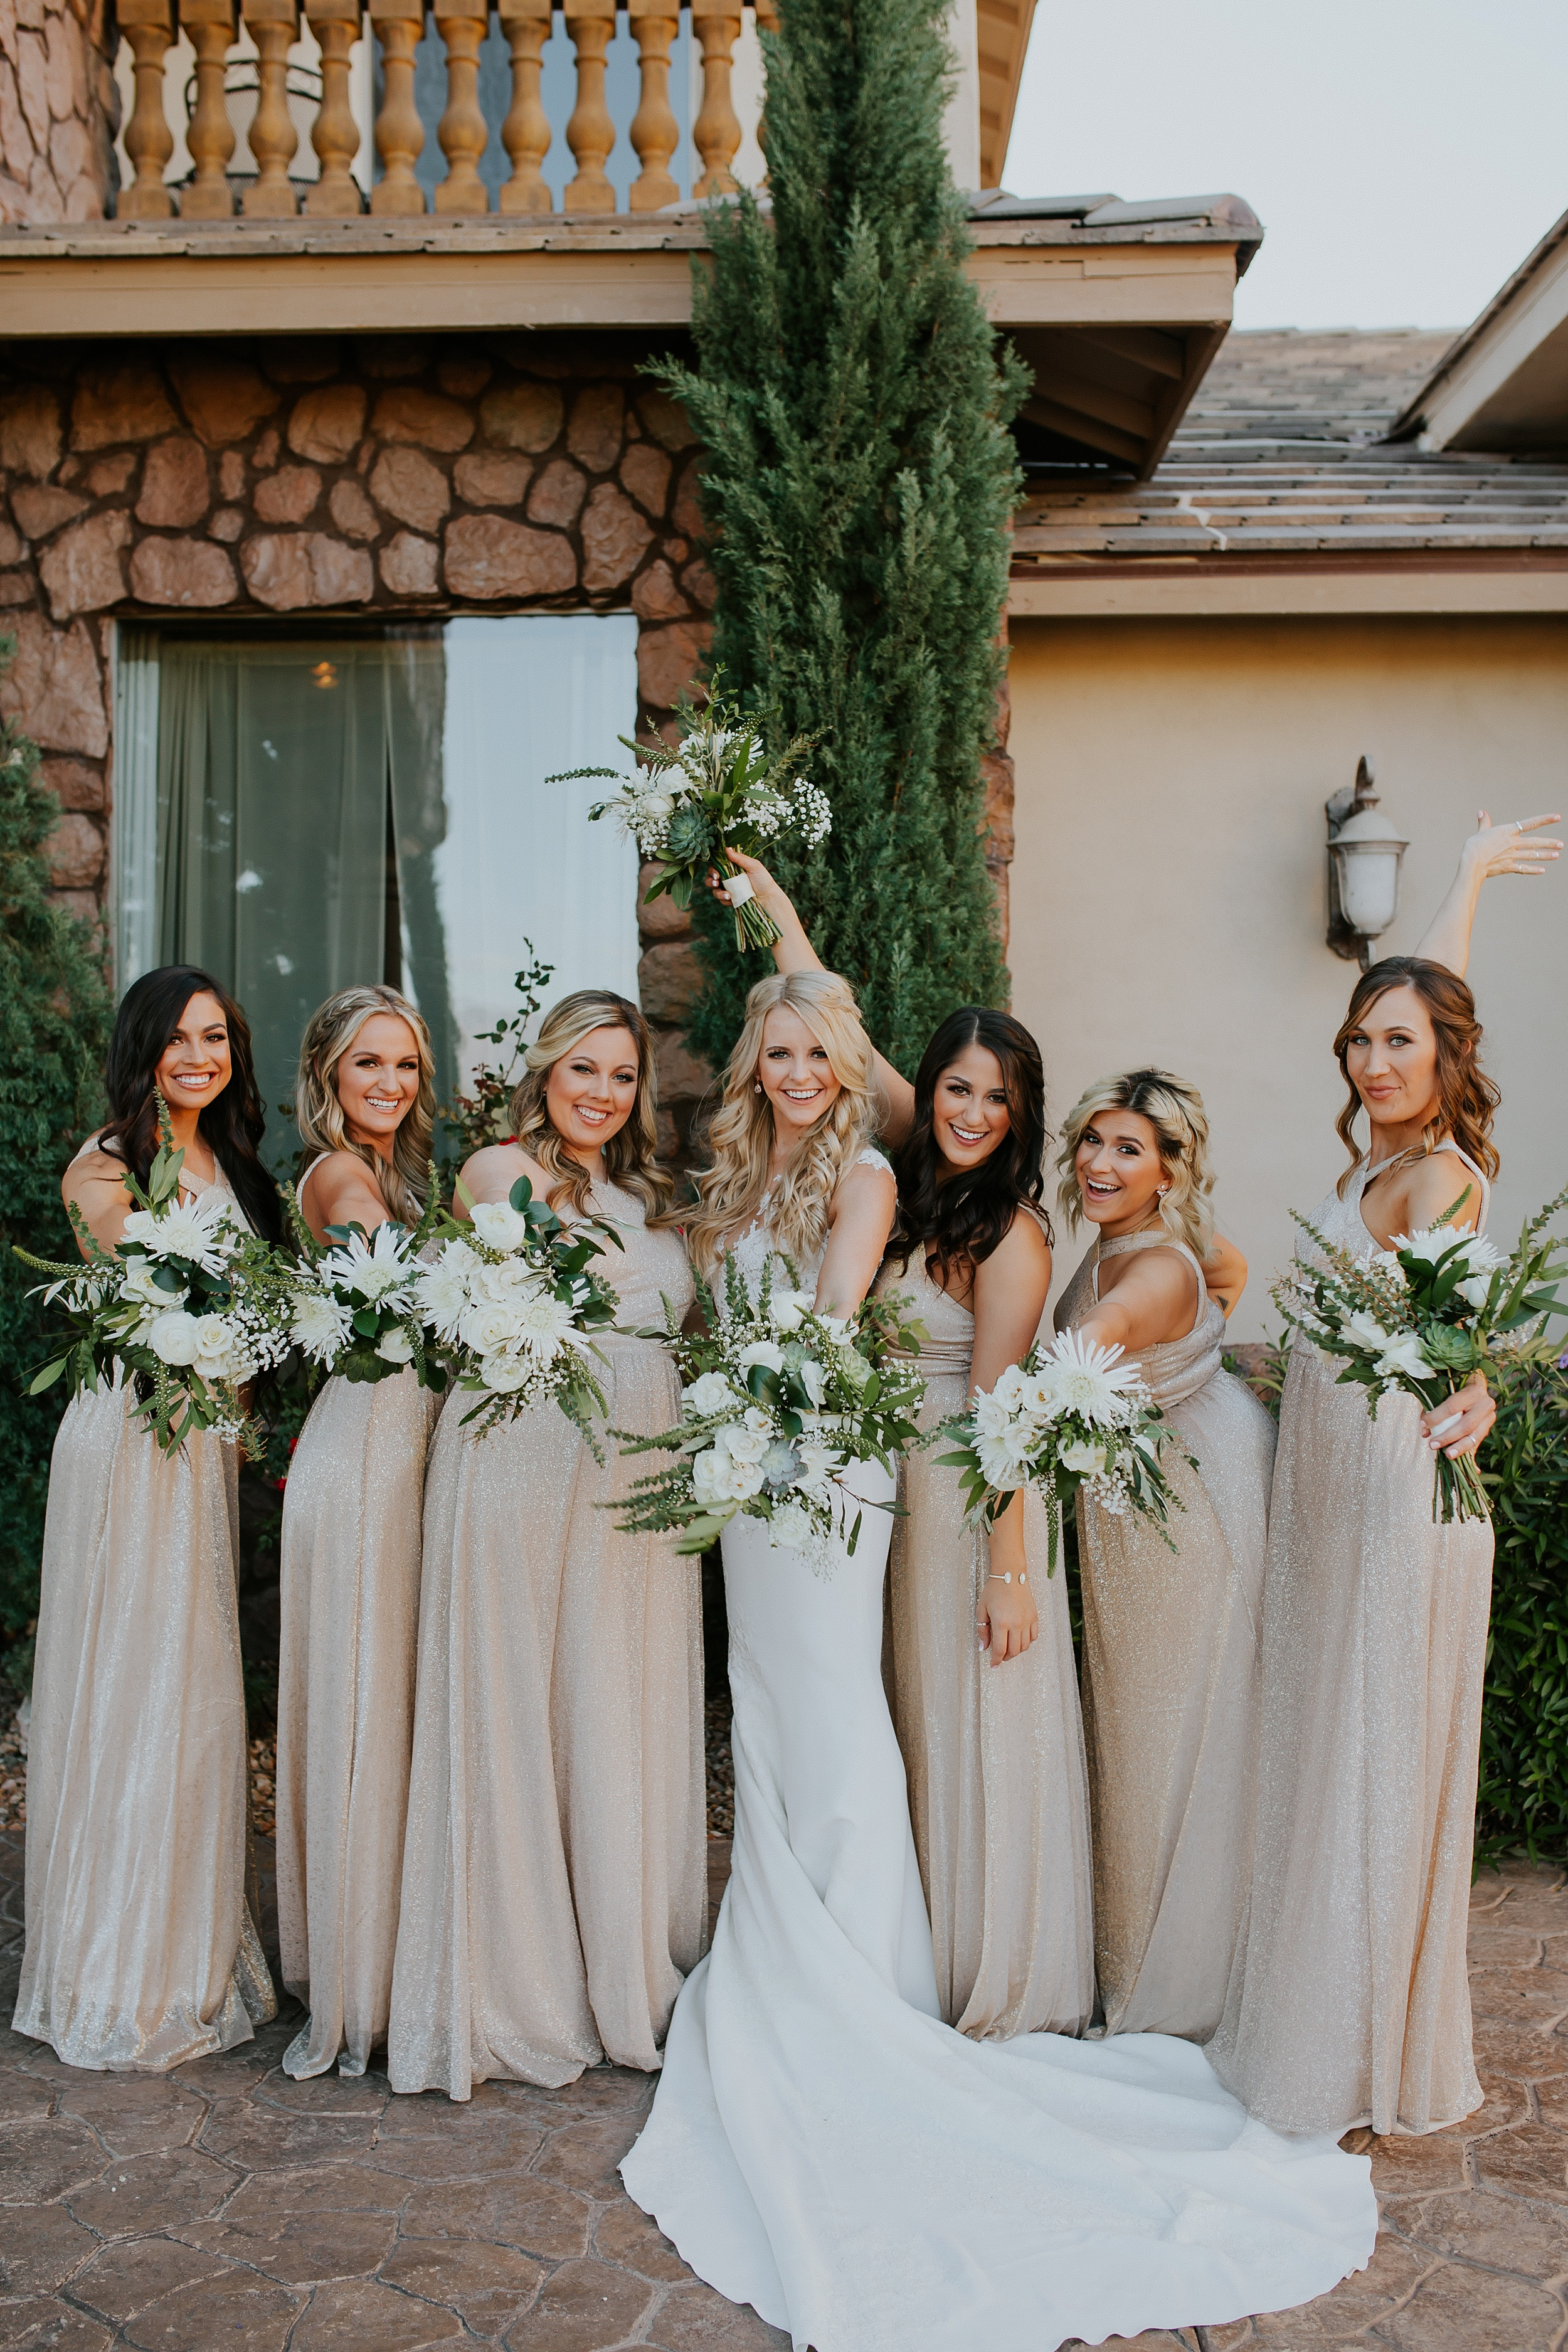 Meg+Bubba_Wedding_WeddingParty_Arizona-74.jpg